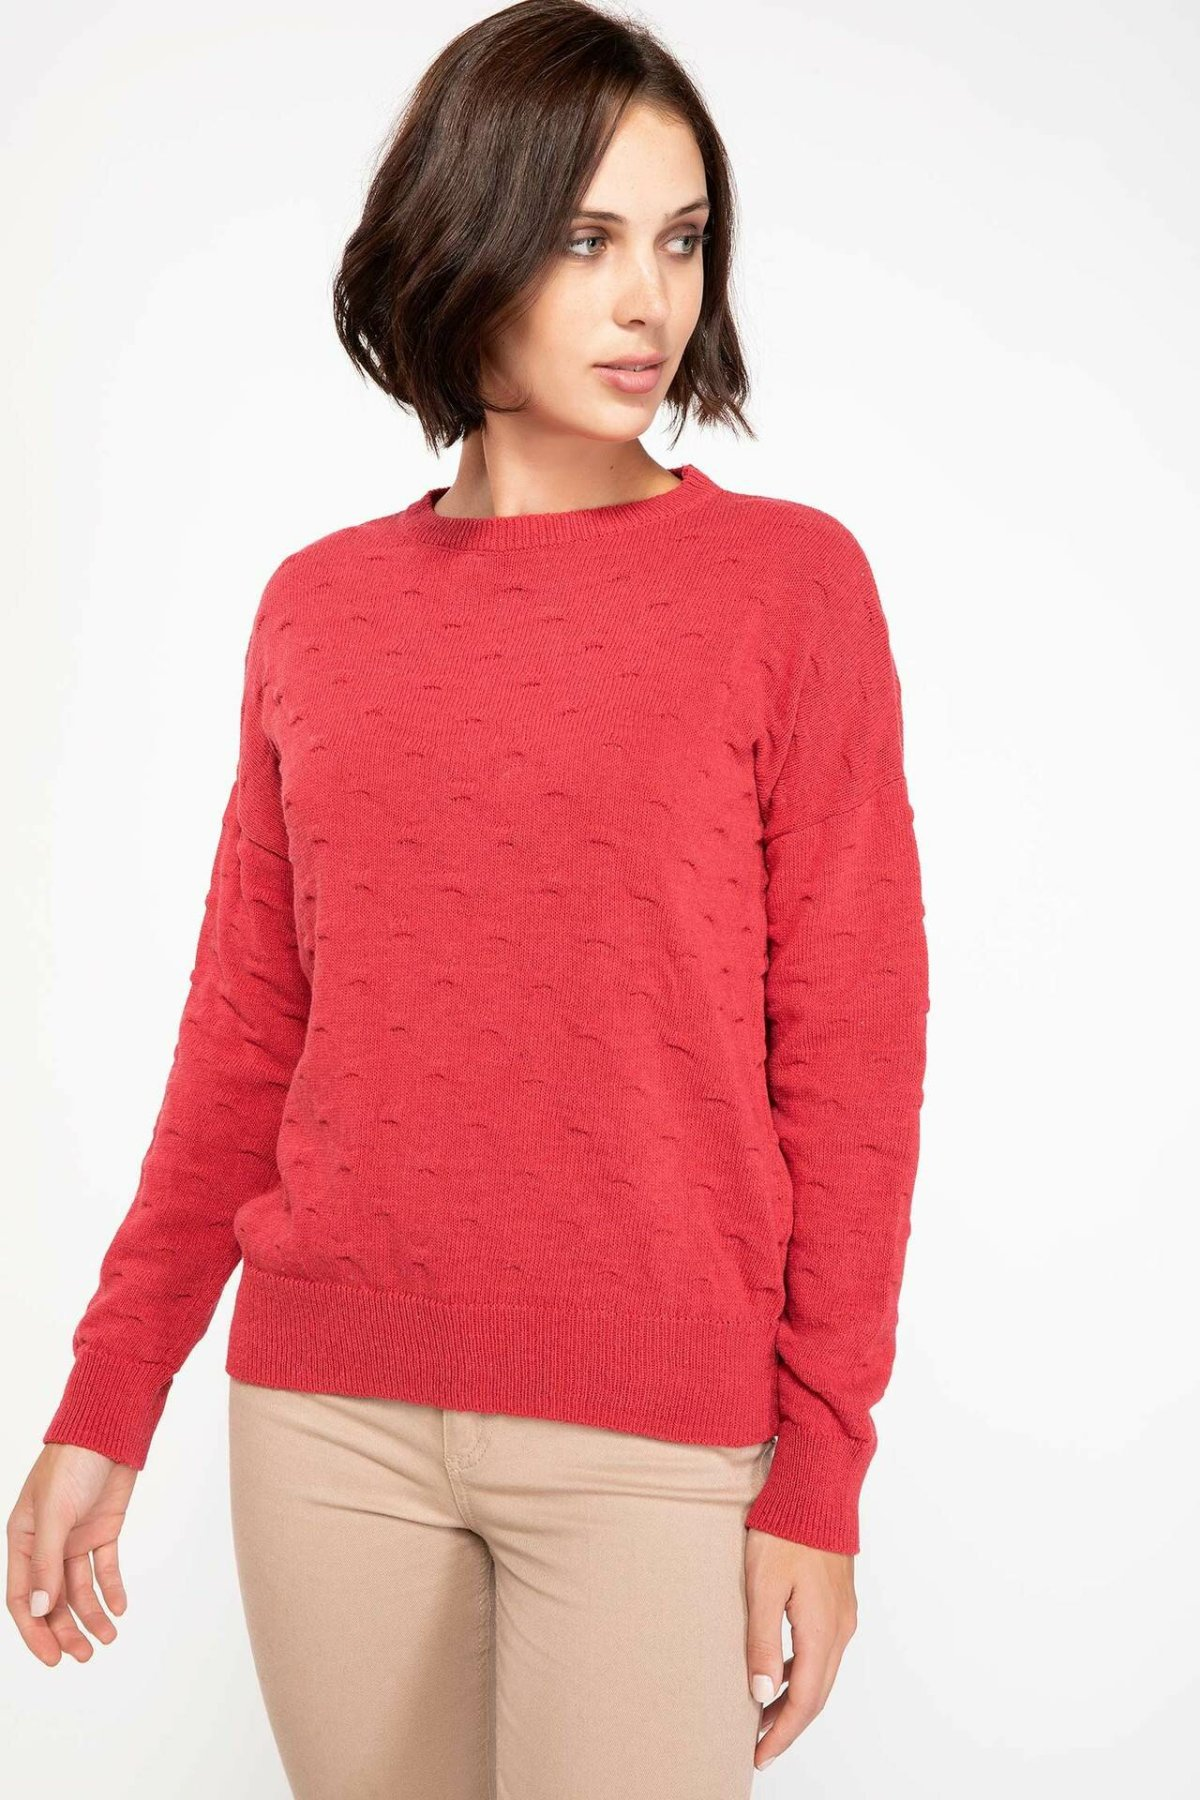 DeFacto Women Fashion Simple Solid O-neck Slim Knitted Pullovers Casual Long Sleeves Women Tops Autumn New -I3784AZ18WN